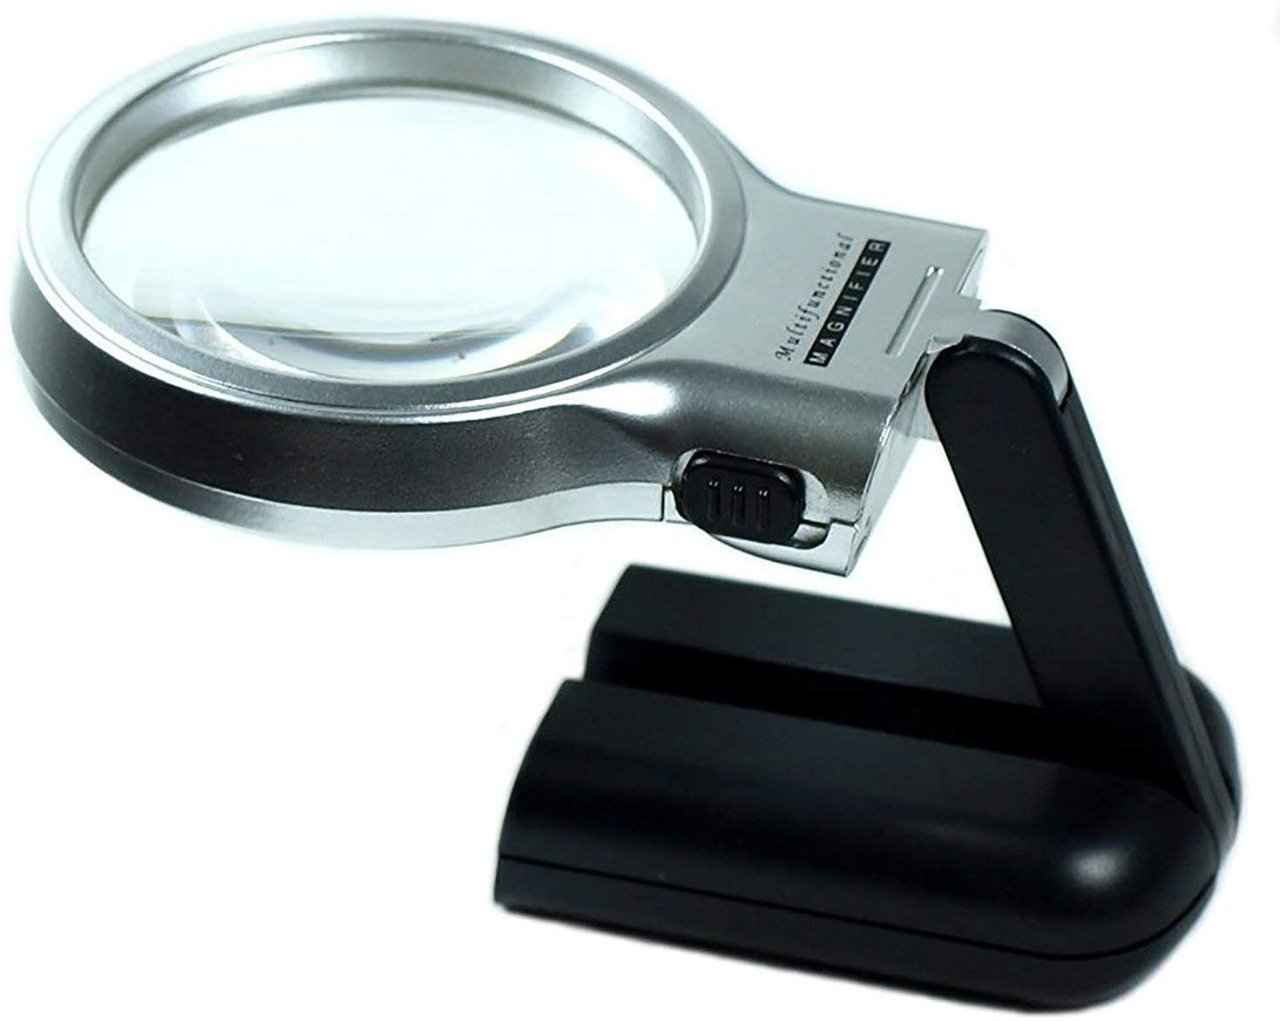 Multifunctional 3-in-1 Hand-Held Folding Lighted High-Powered Magnifier Glass with 3X Zoom and 2 LED Lights